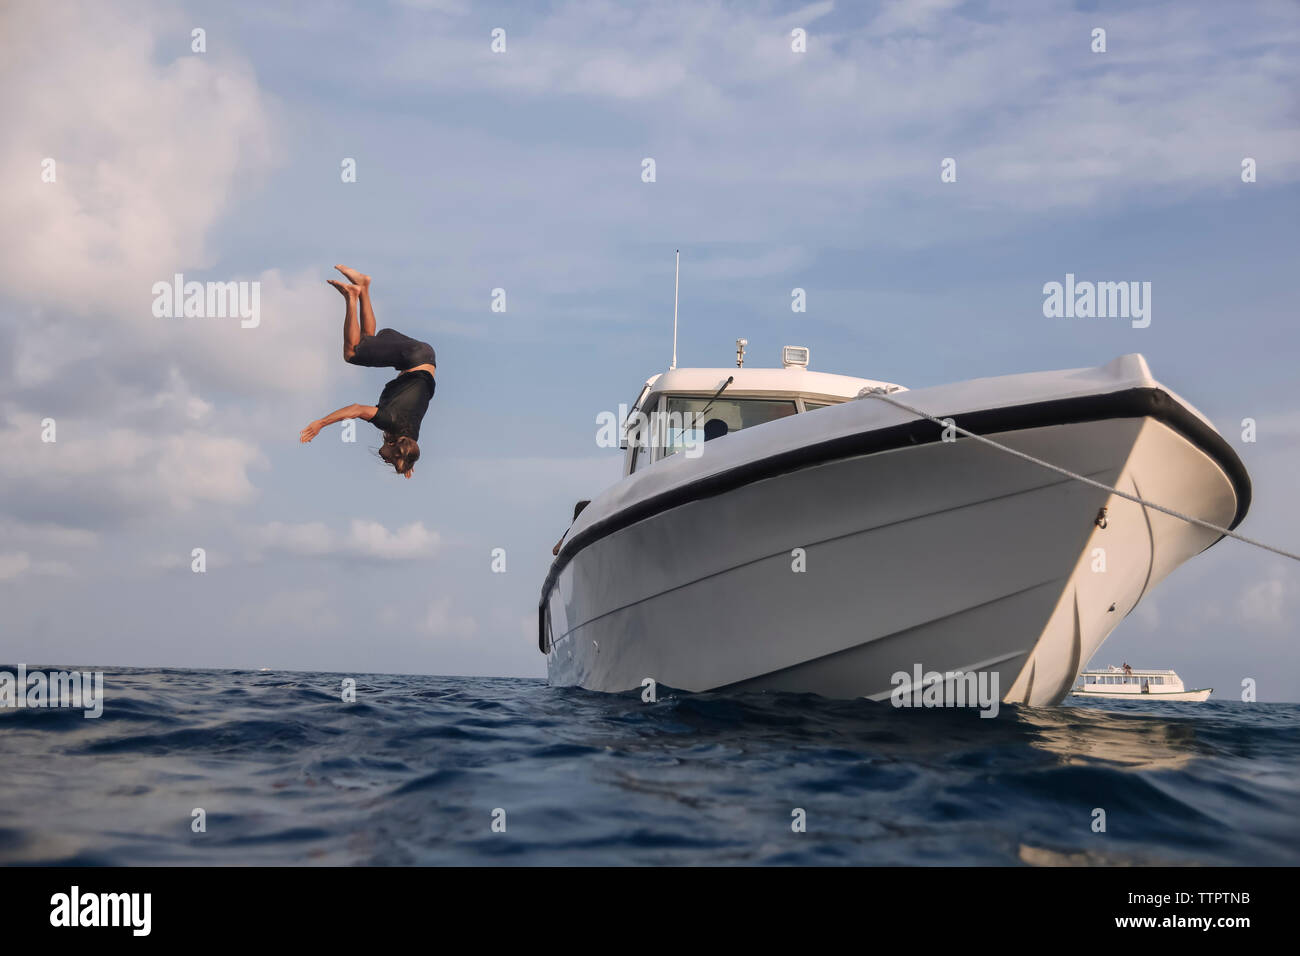 Low angle view of man diving into sea from yacht against cloudy sky at Maldives Stock Photo